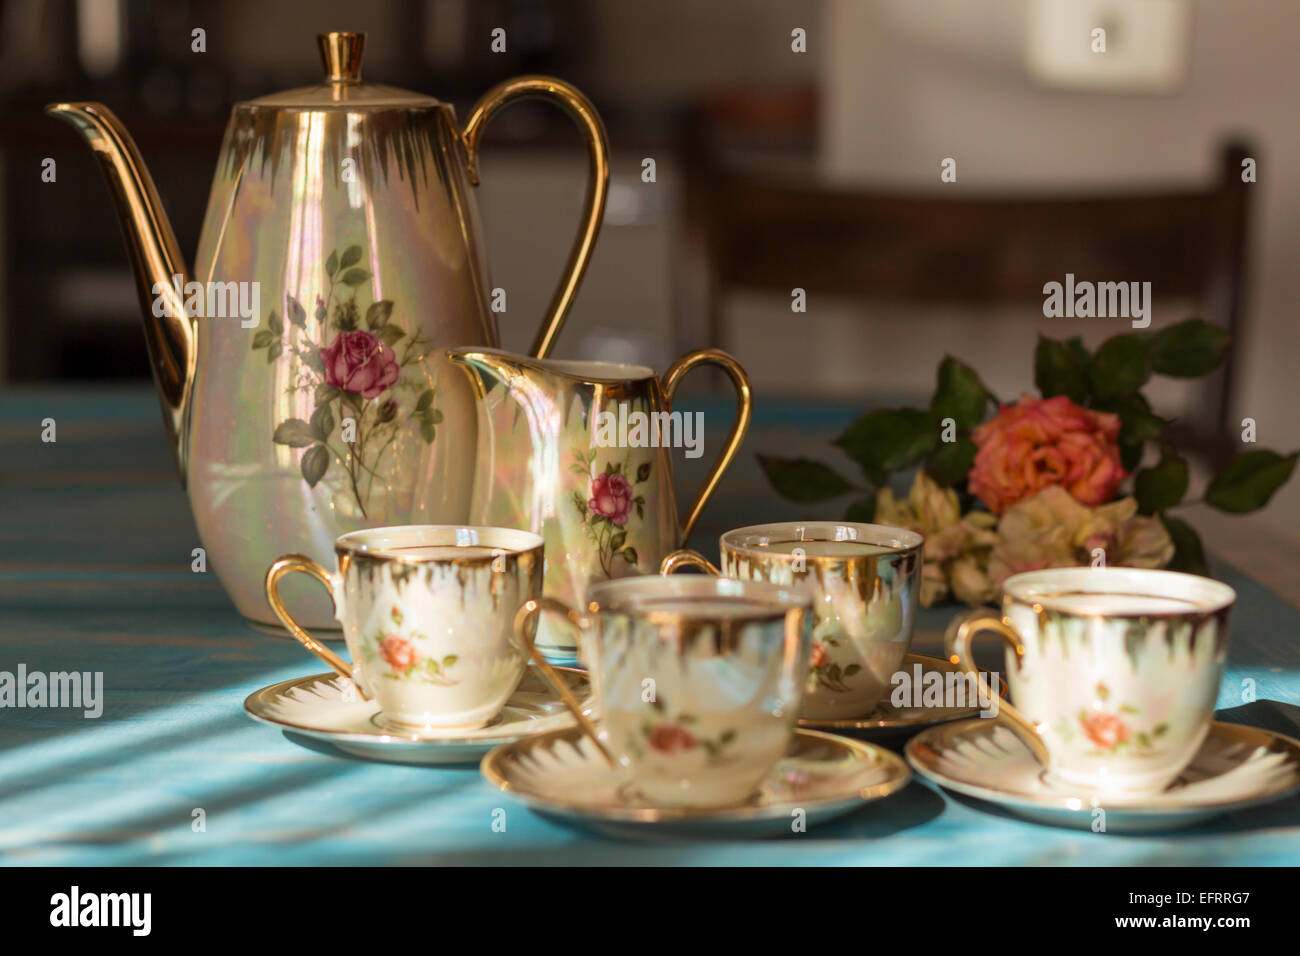 Vintage Tea Cups And Teapot On Old Wooden Table Stock